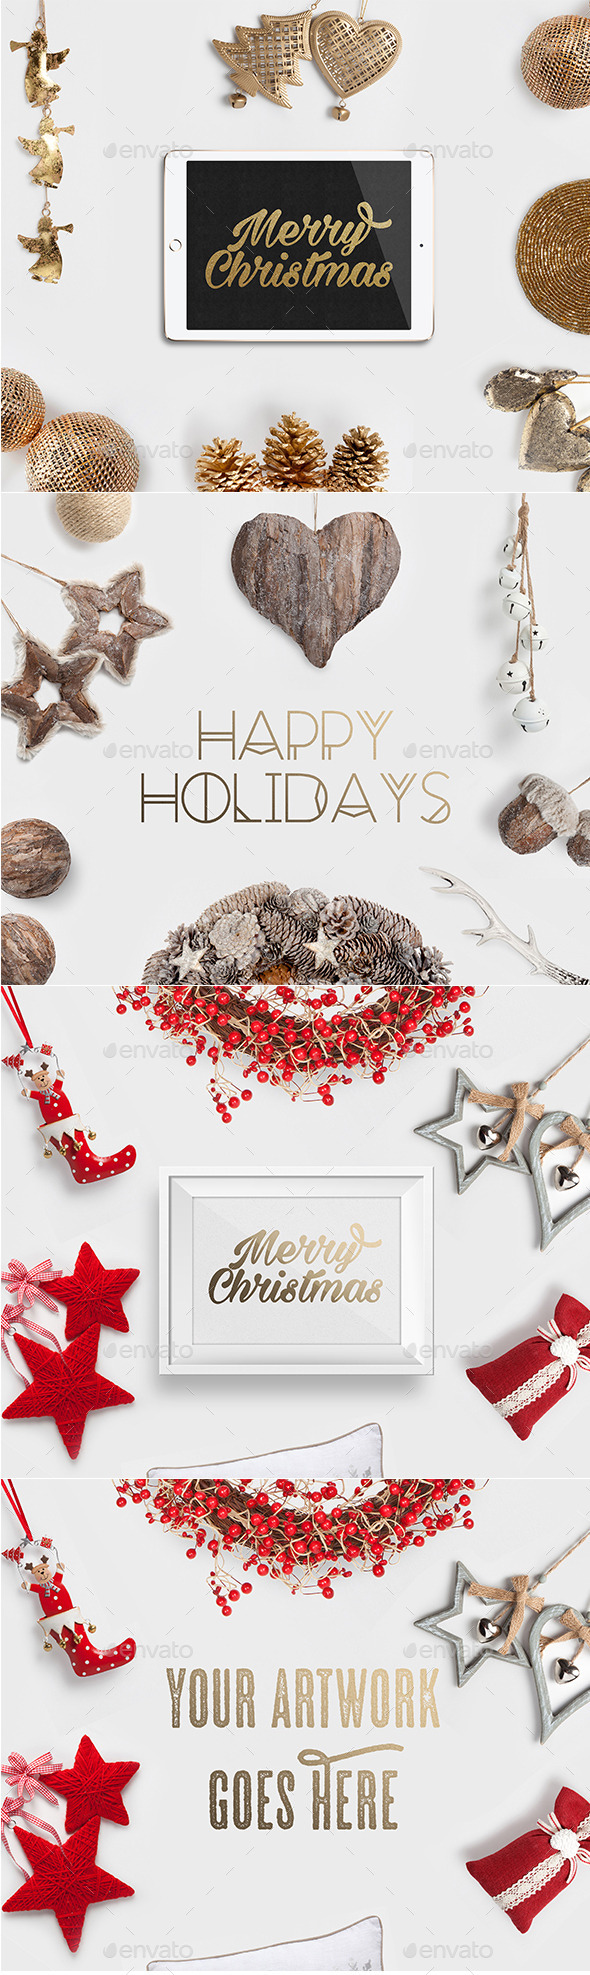 Christmas Photo Headers - Hero Images Graphics